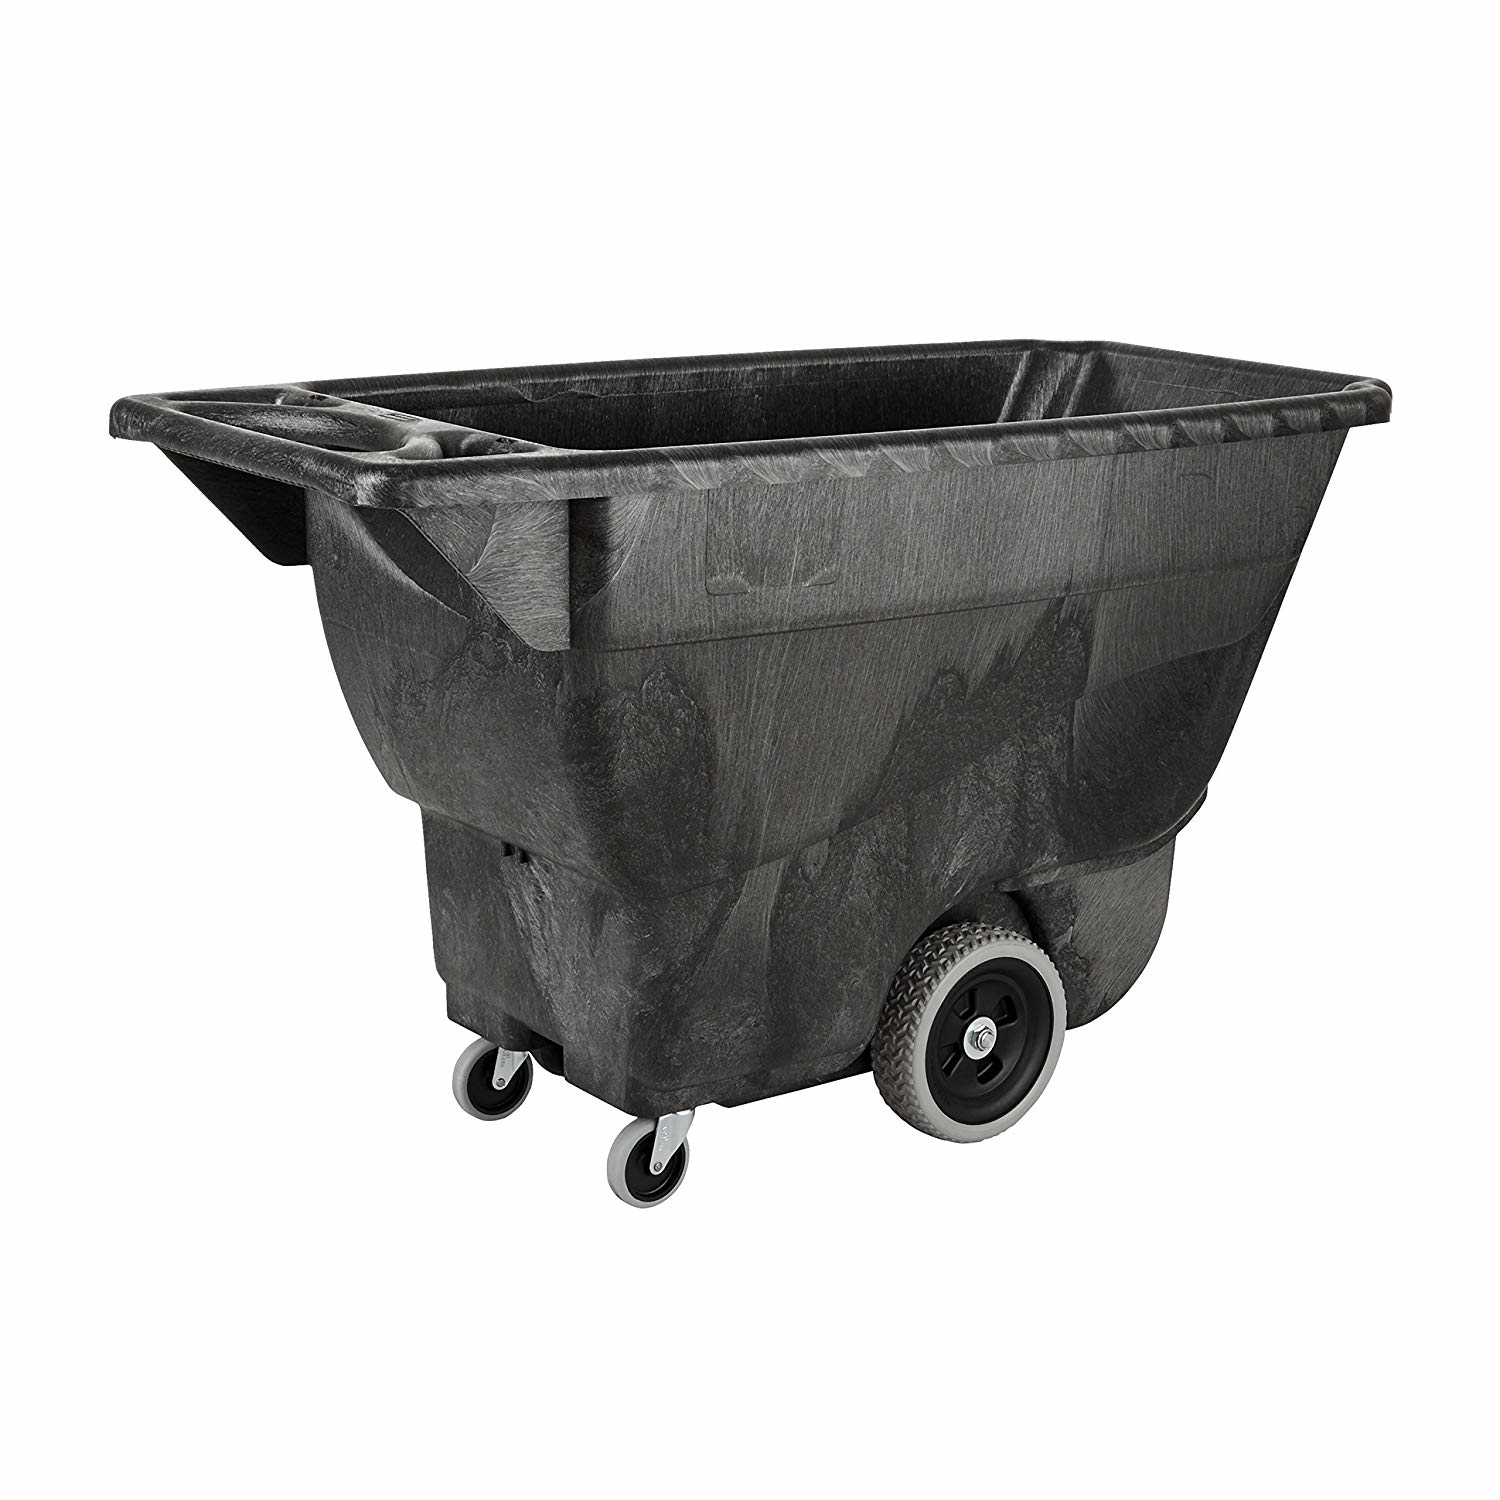 Best Wheelbarrows Top 5 Reviewed3